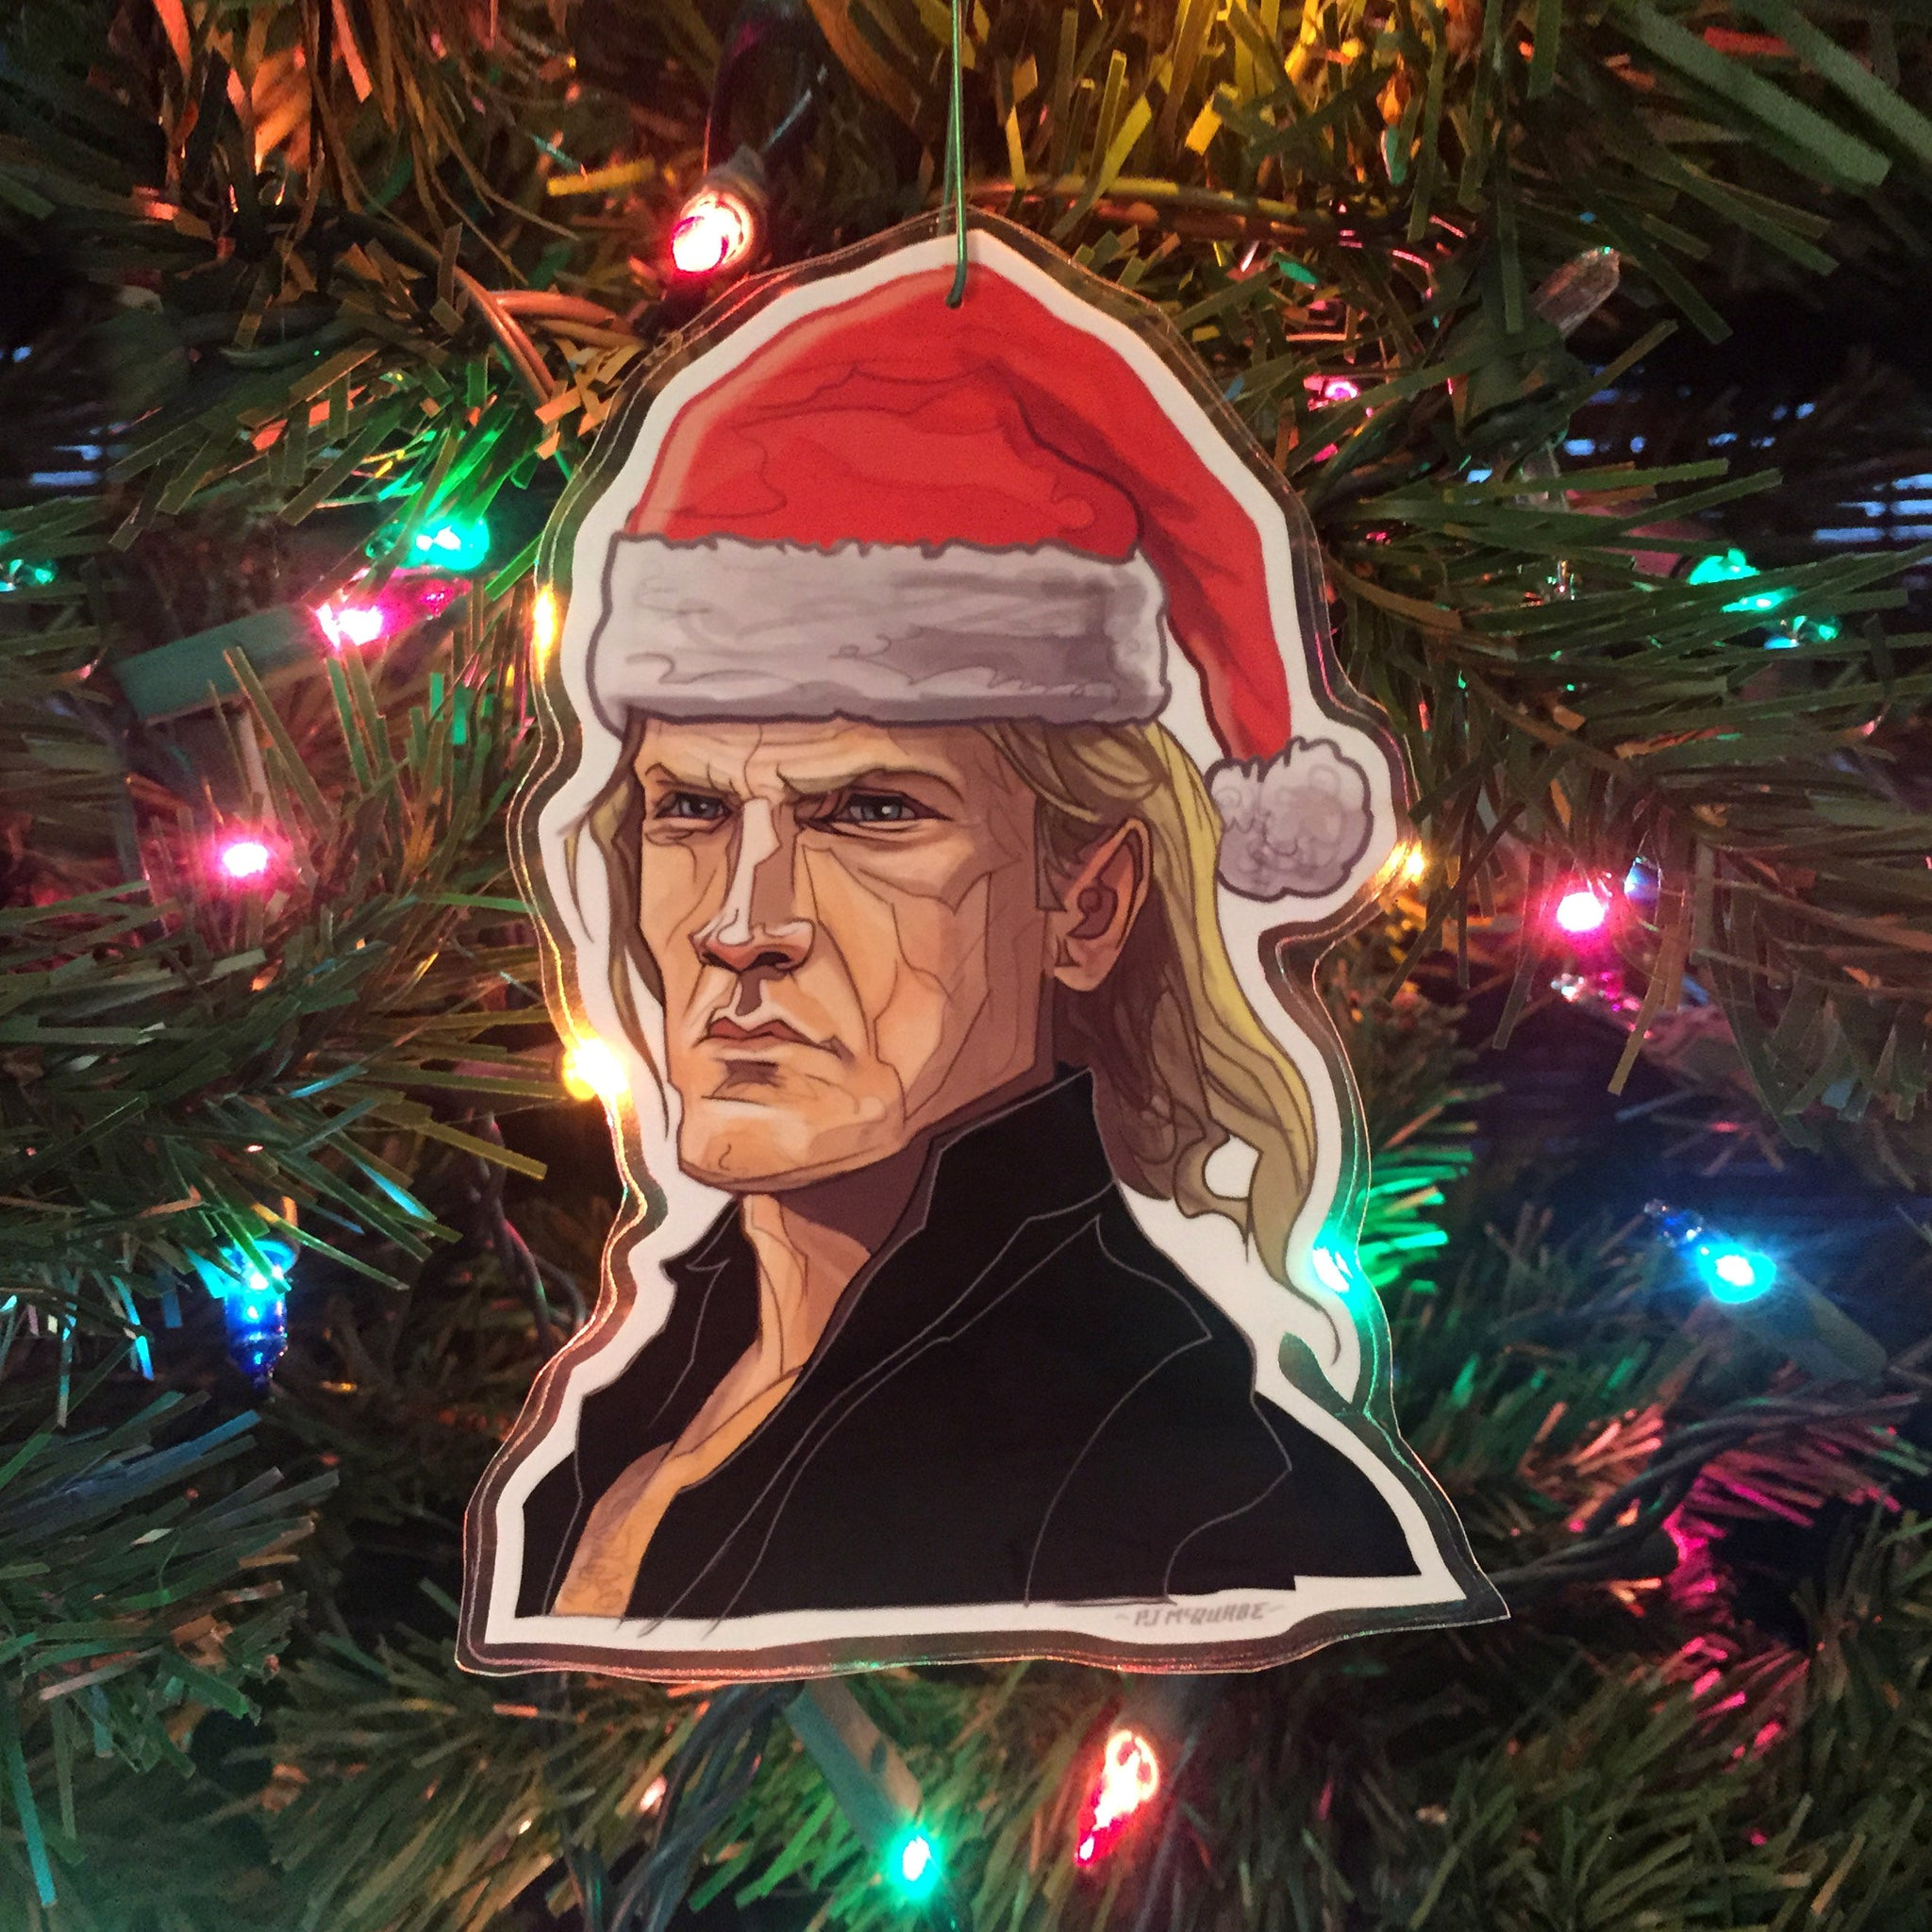 Karl DIE HARD Christmas ORNAMENT!